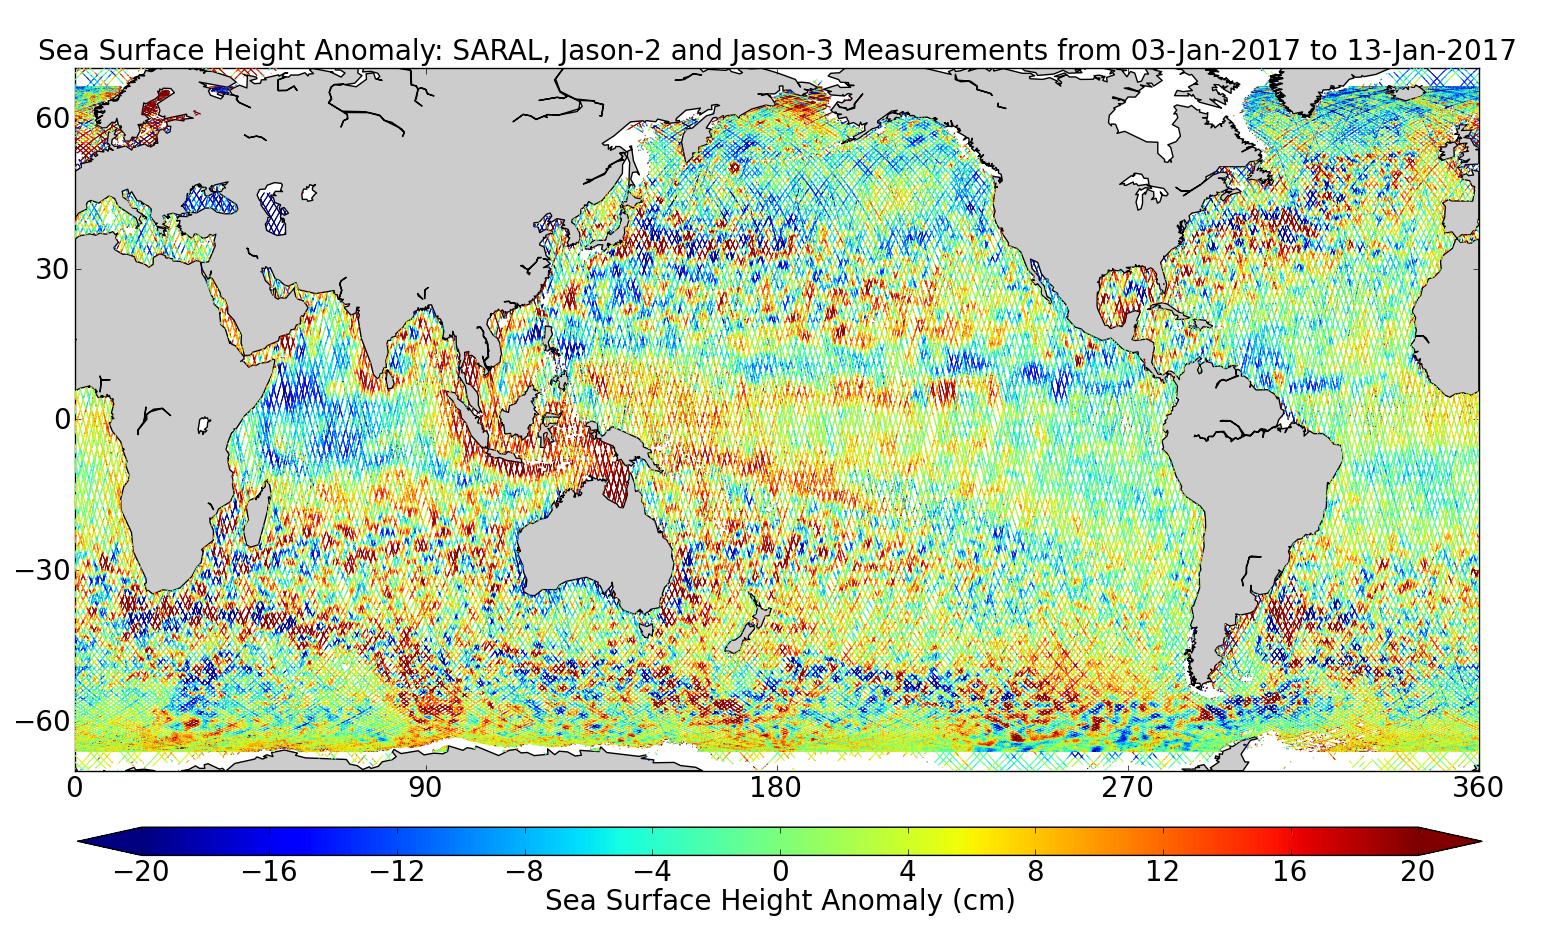 Sea Surface Height Anomaly: SARAL, Jason-2 and Jason-3 Measurements from 03-Jan-2017 to 13-Jan-2017